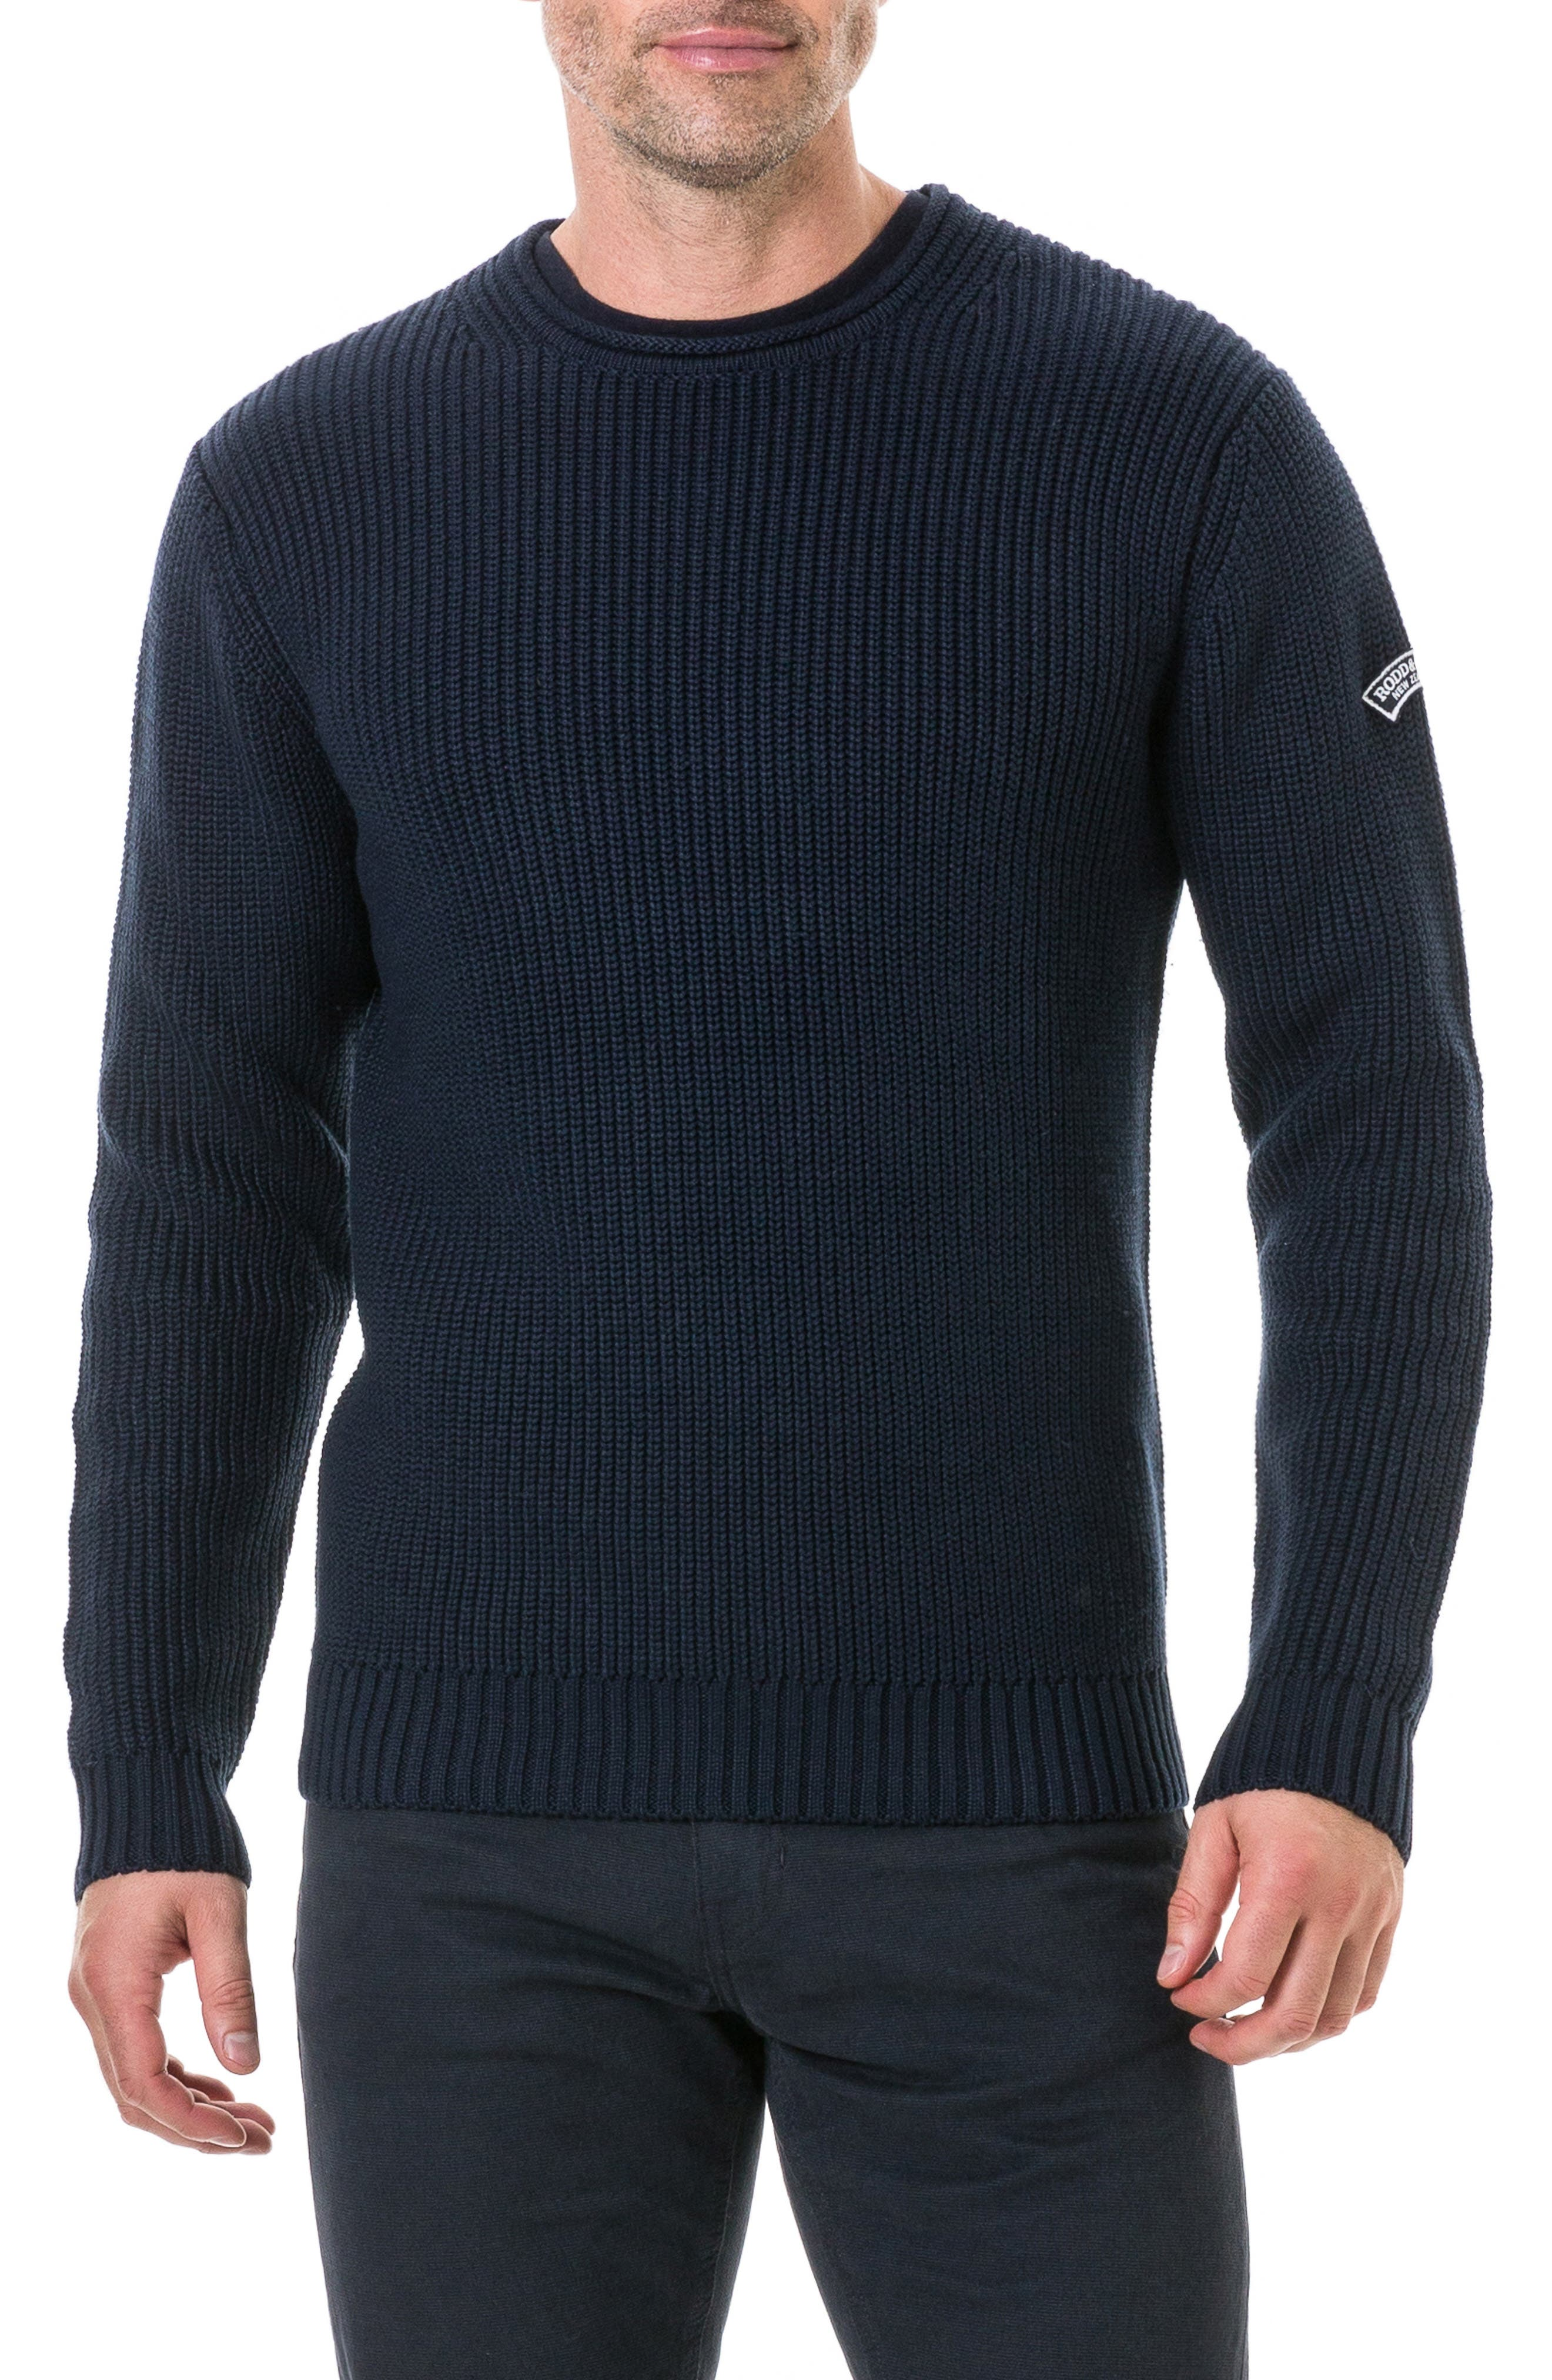 Image of RODD AND GUNN Casnell Island Knit Regular Fit Sweater